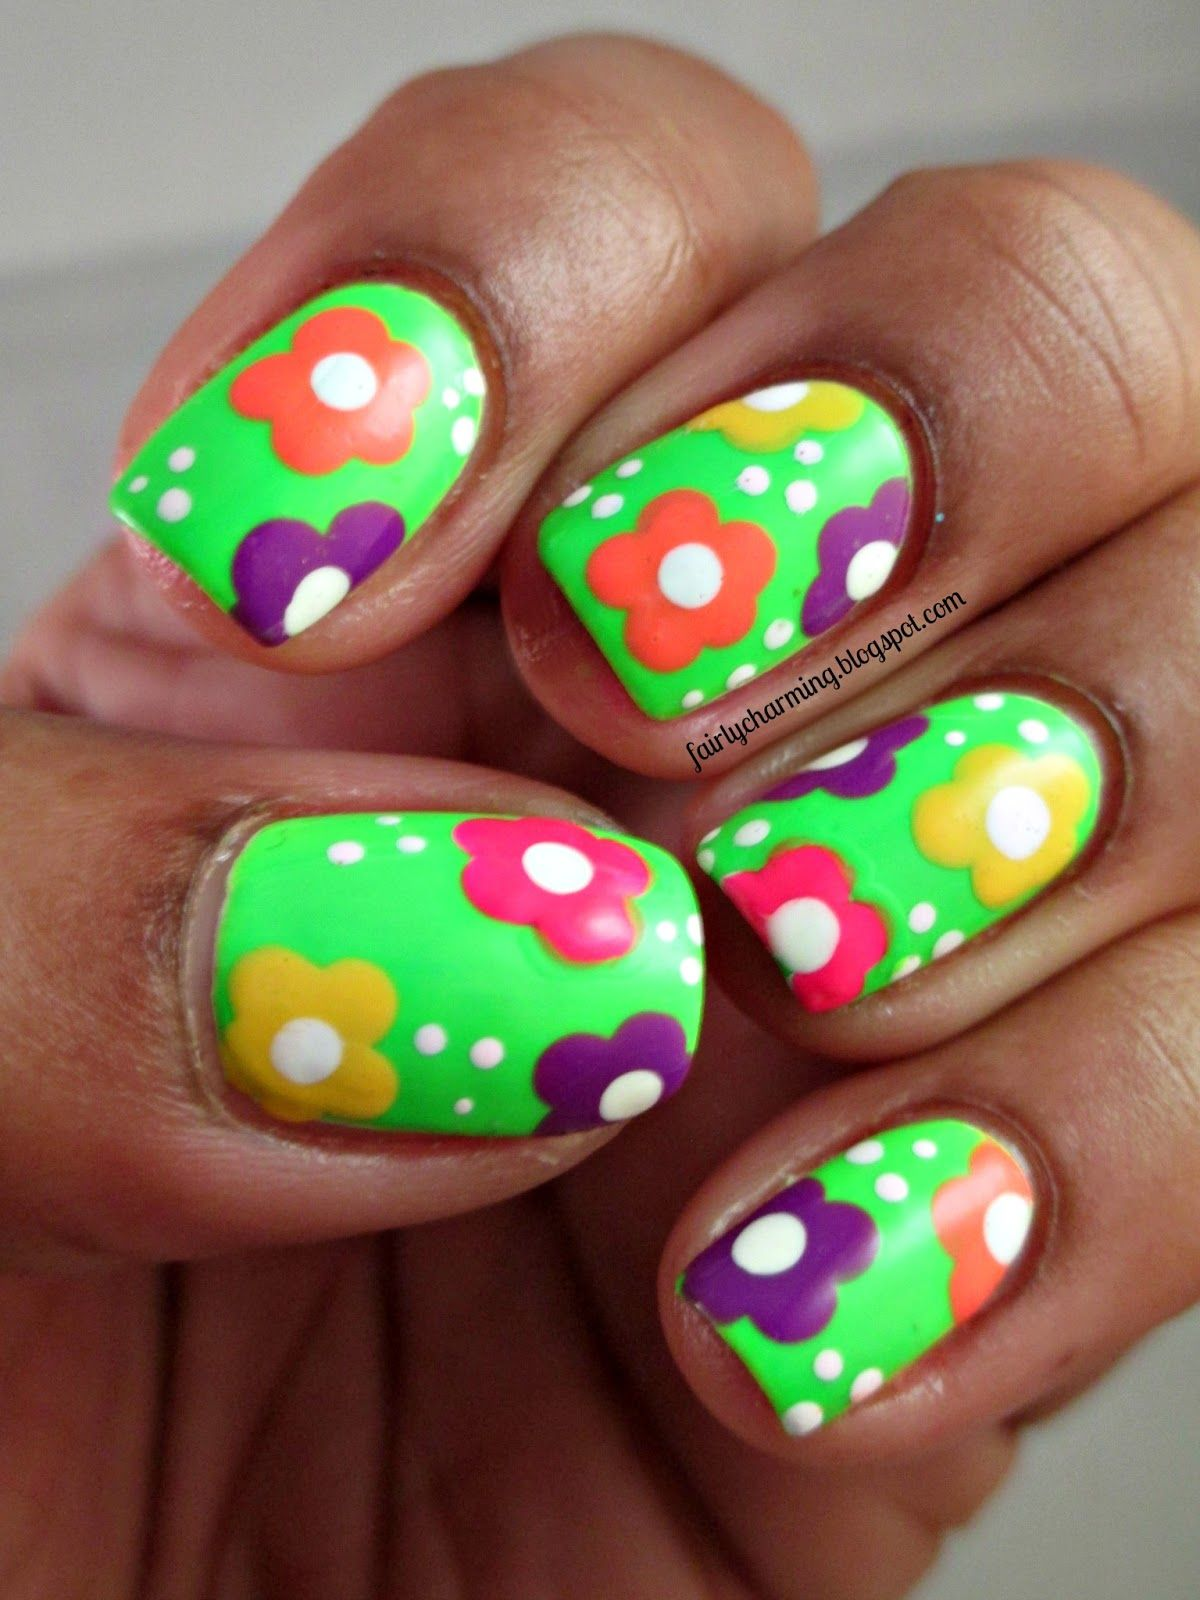 60s nail design gallery nail art and nail design ideas psychedelic flowers hippie 60s neon savina power up orly psychedelic flowers hippie 60s neon savina power prinsesfo Gallery